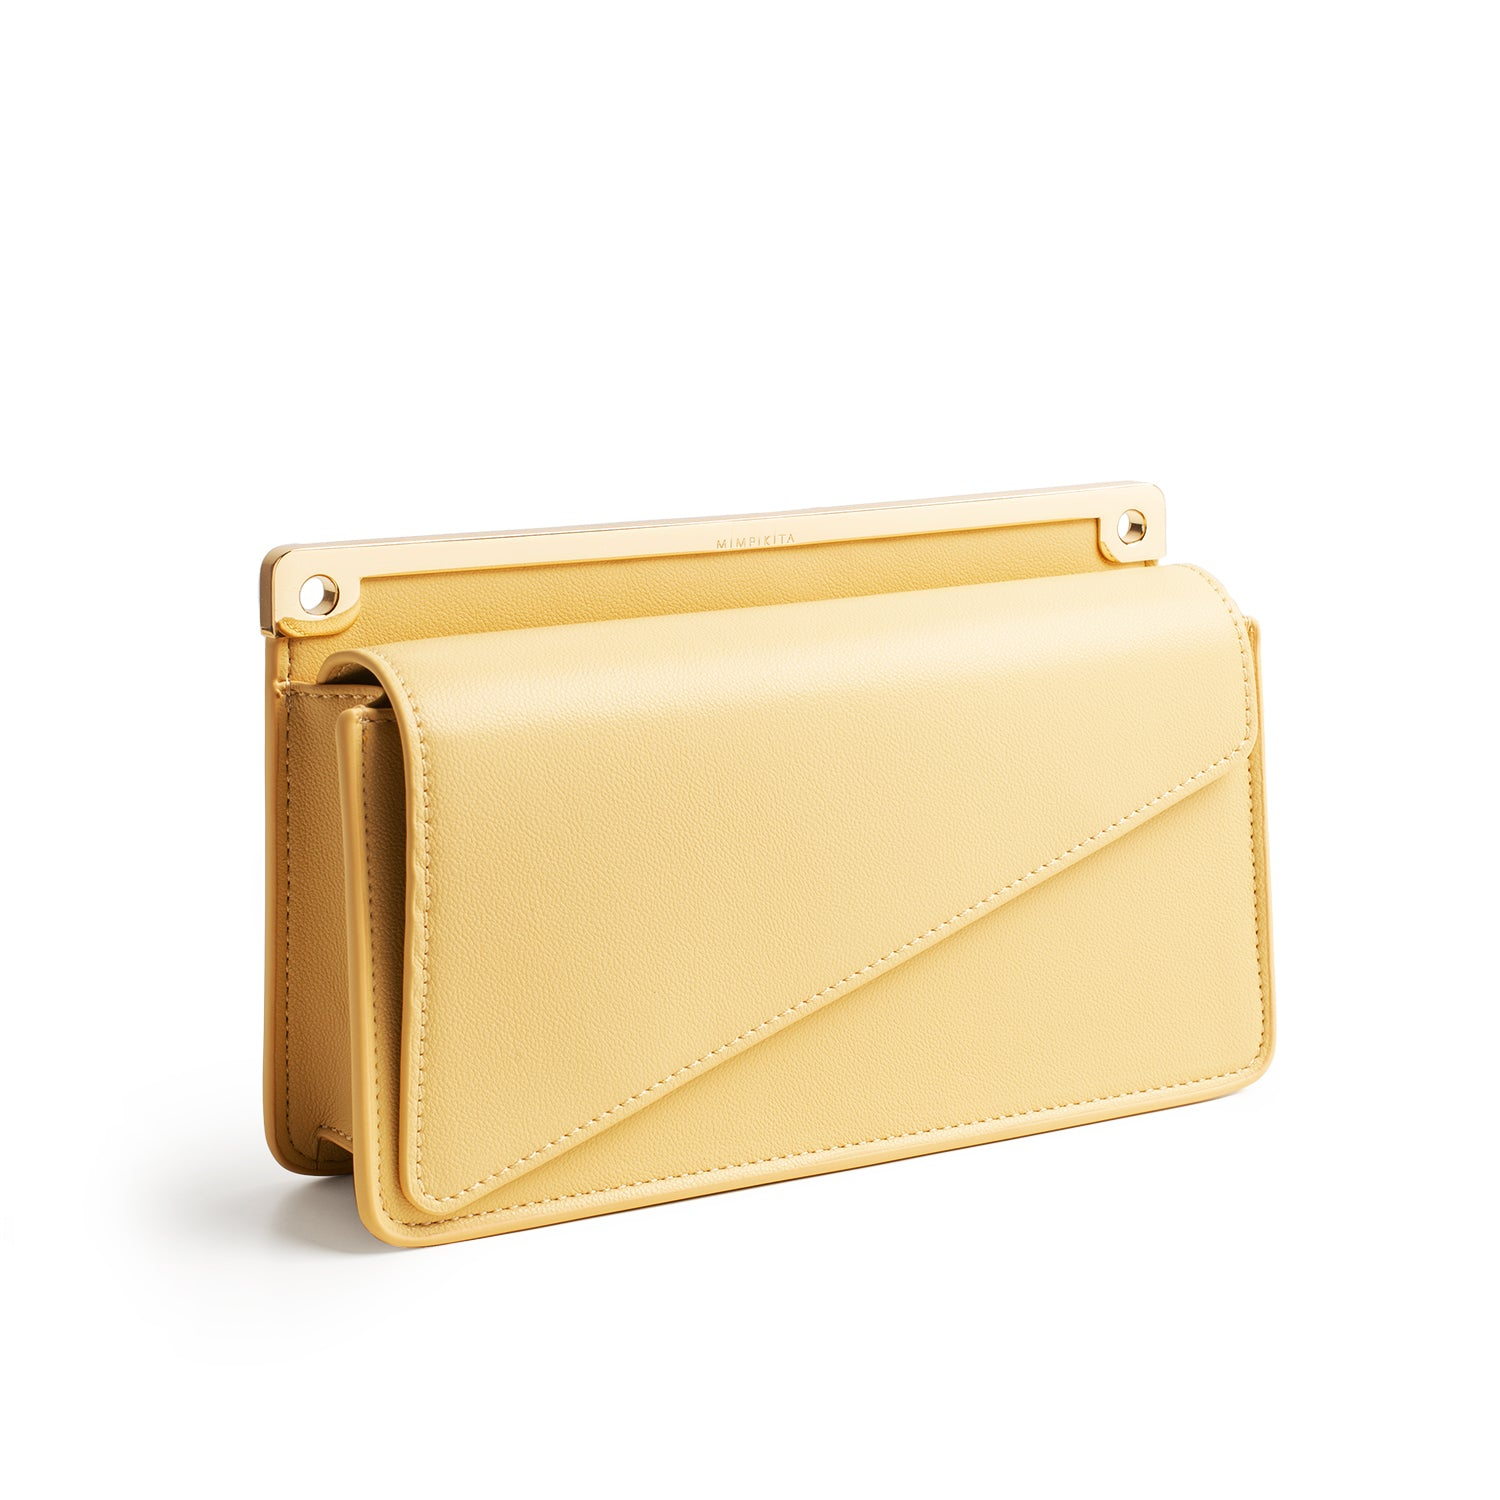 KITA CLUTCH - SOFT YELLOW